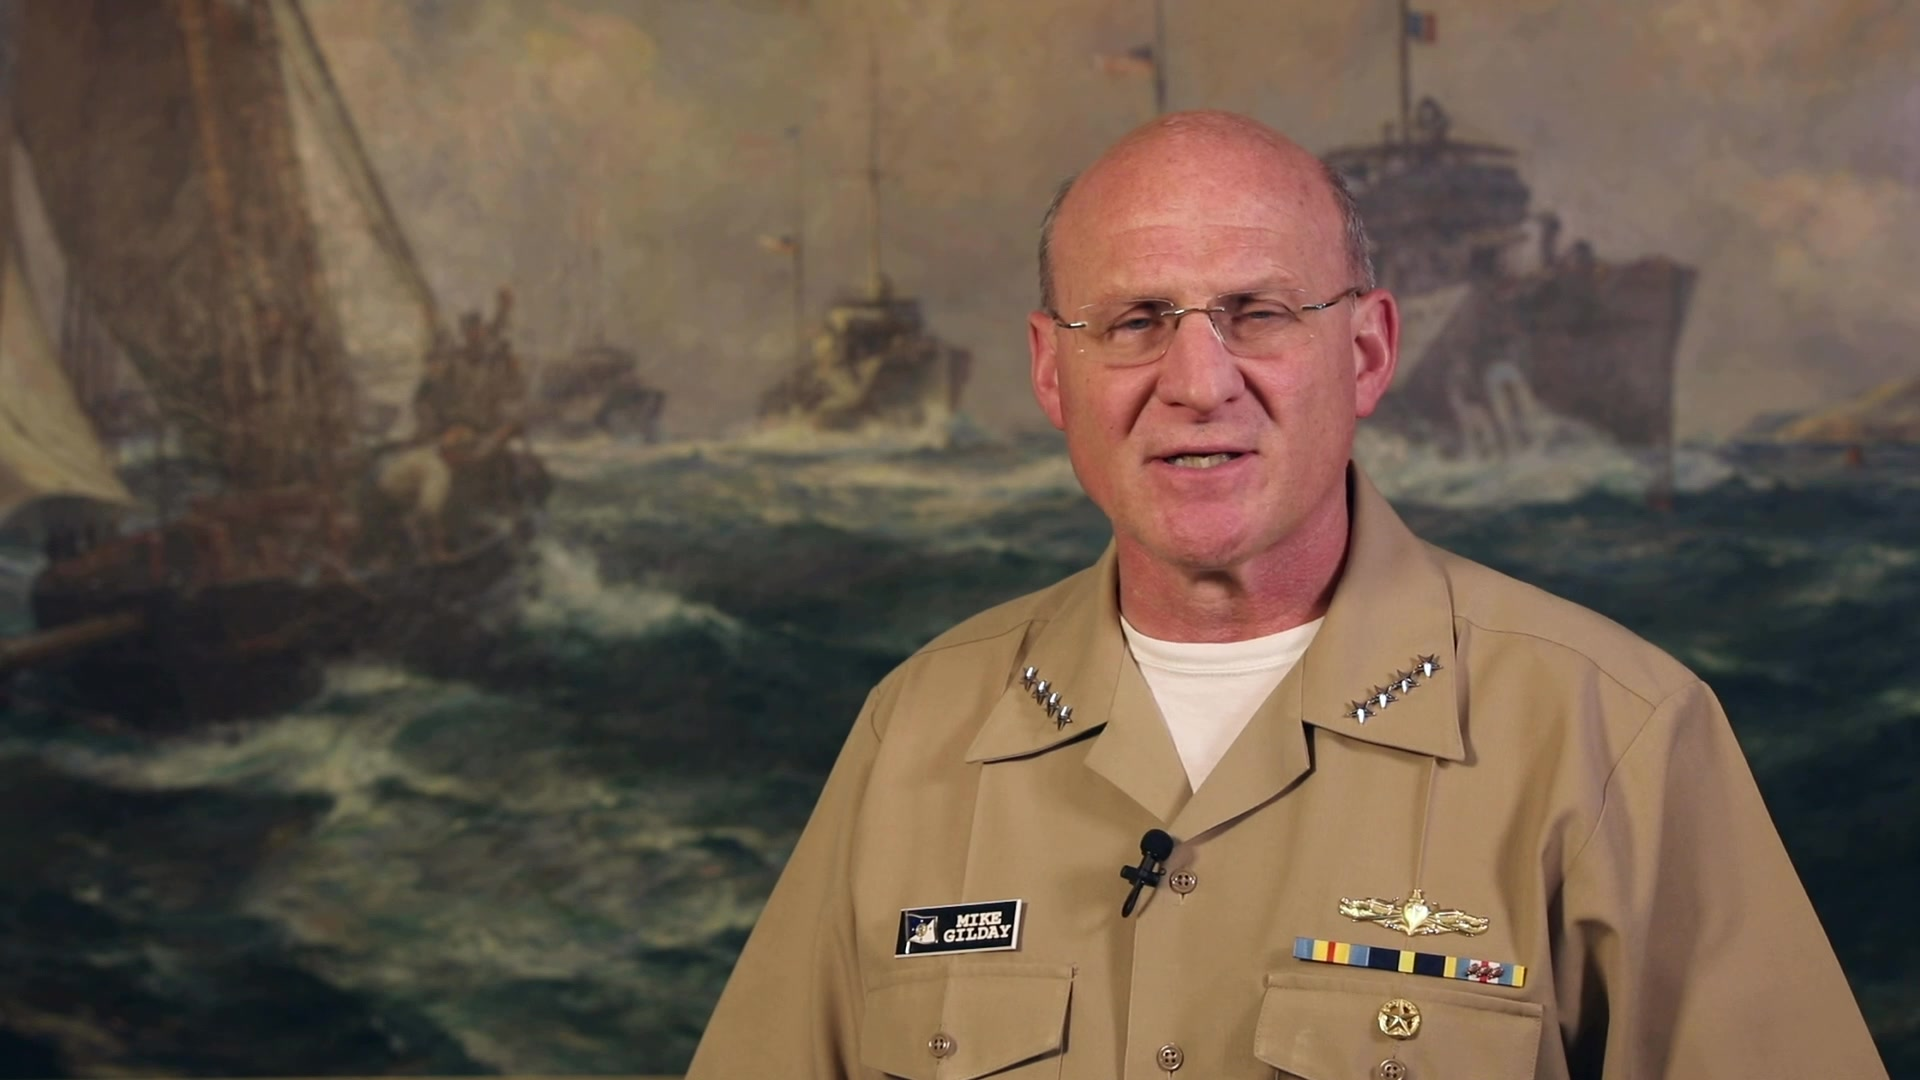 CNO and MCPON update the Navy with a message to the fleet regarding COVID-19, March 30, 2020.